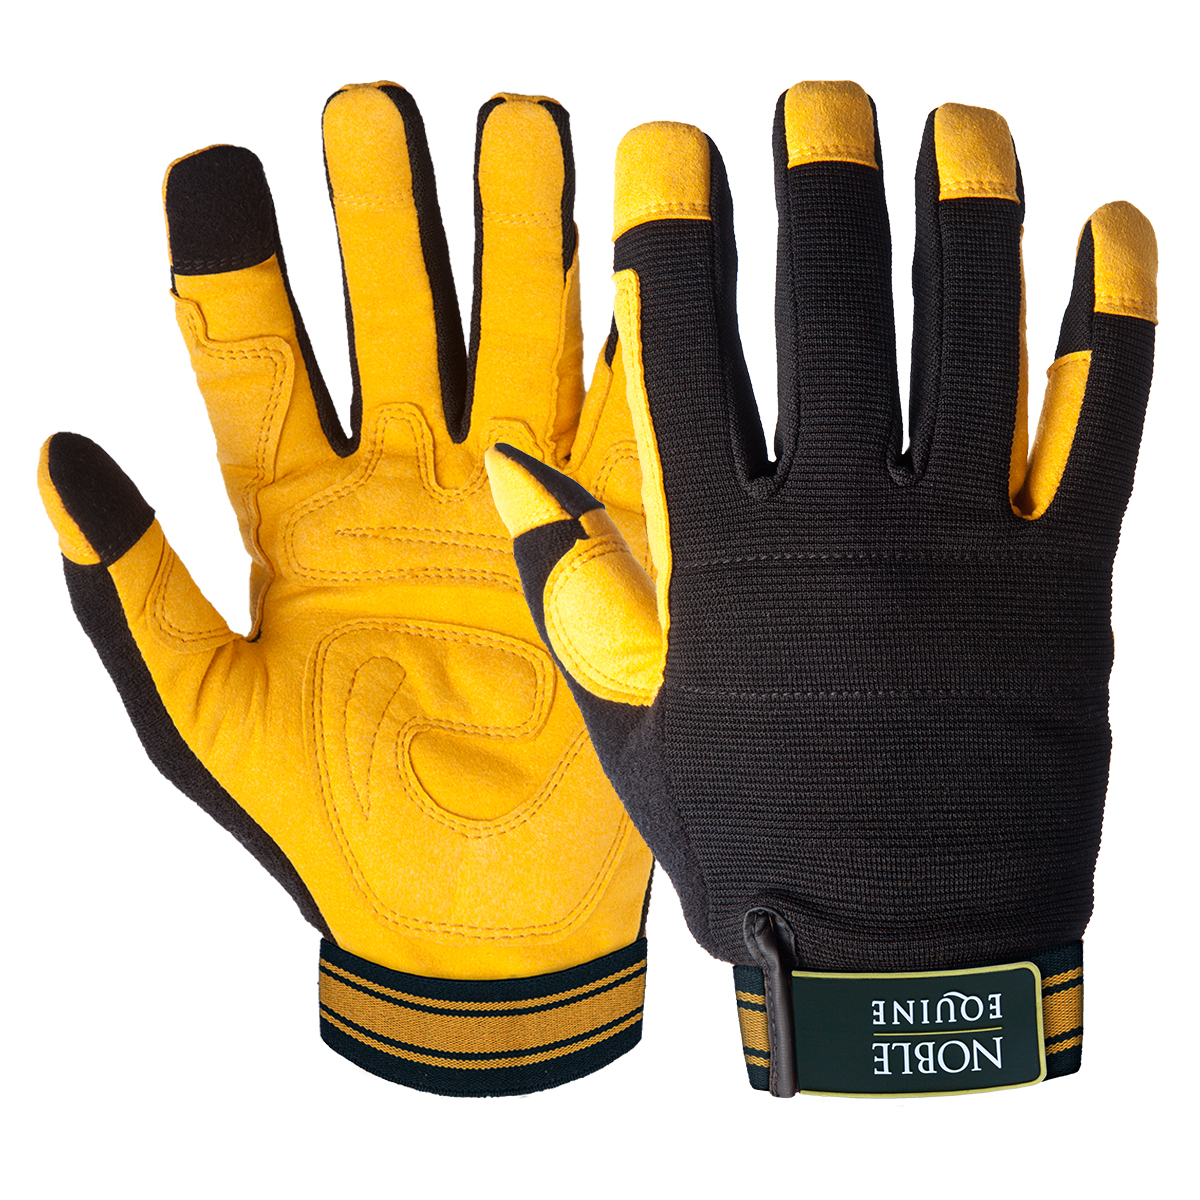 Noble Equine Outrider Glove